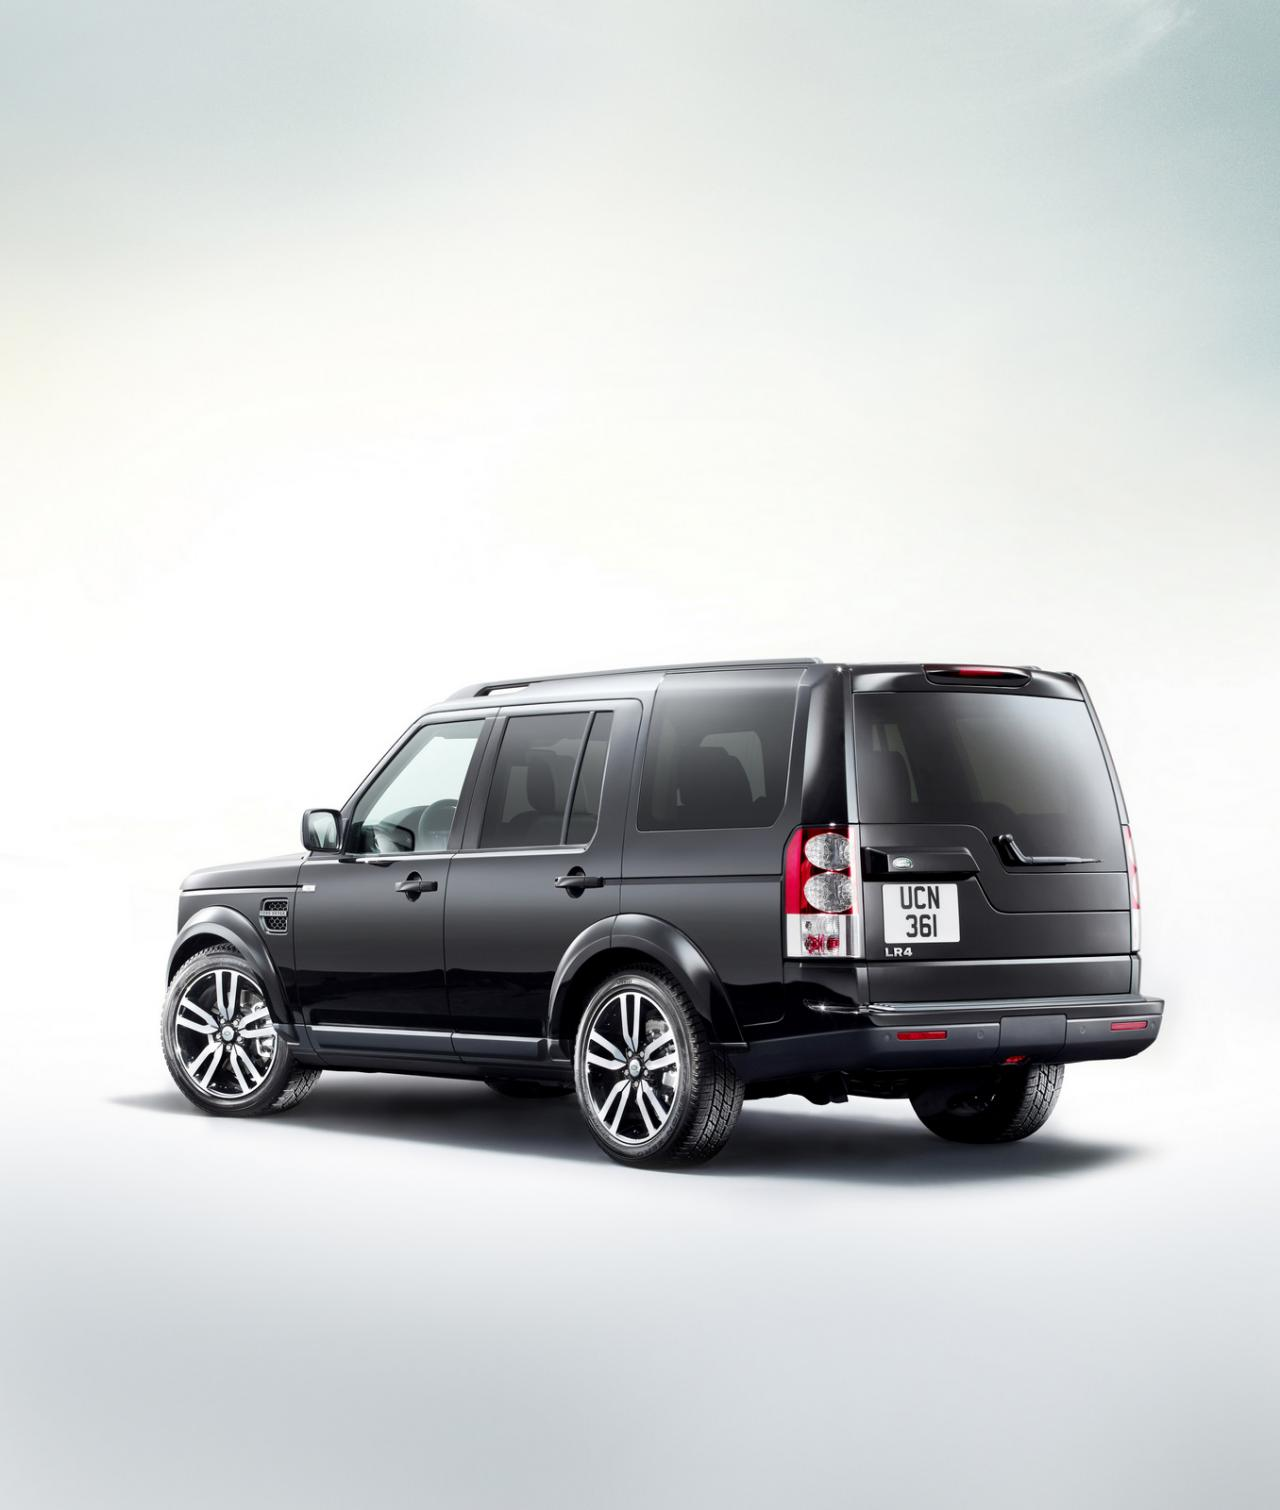 Land Rover Discovery 4 Landmark Special Edition Hits The Uk Market